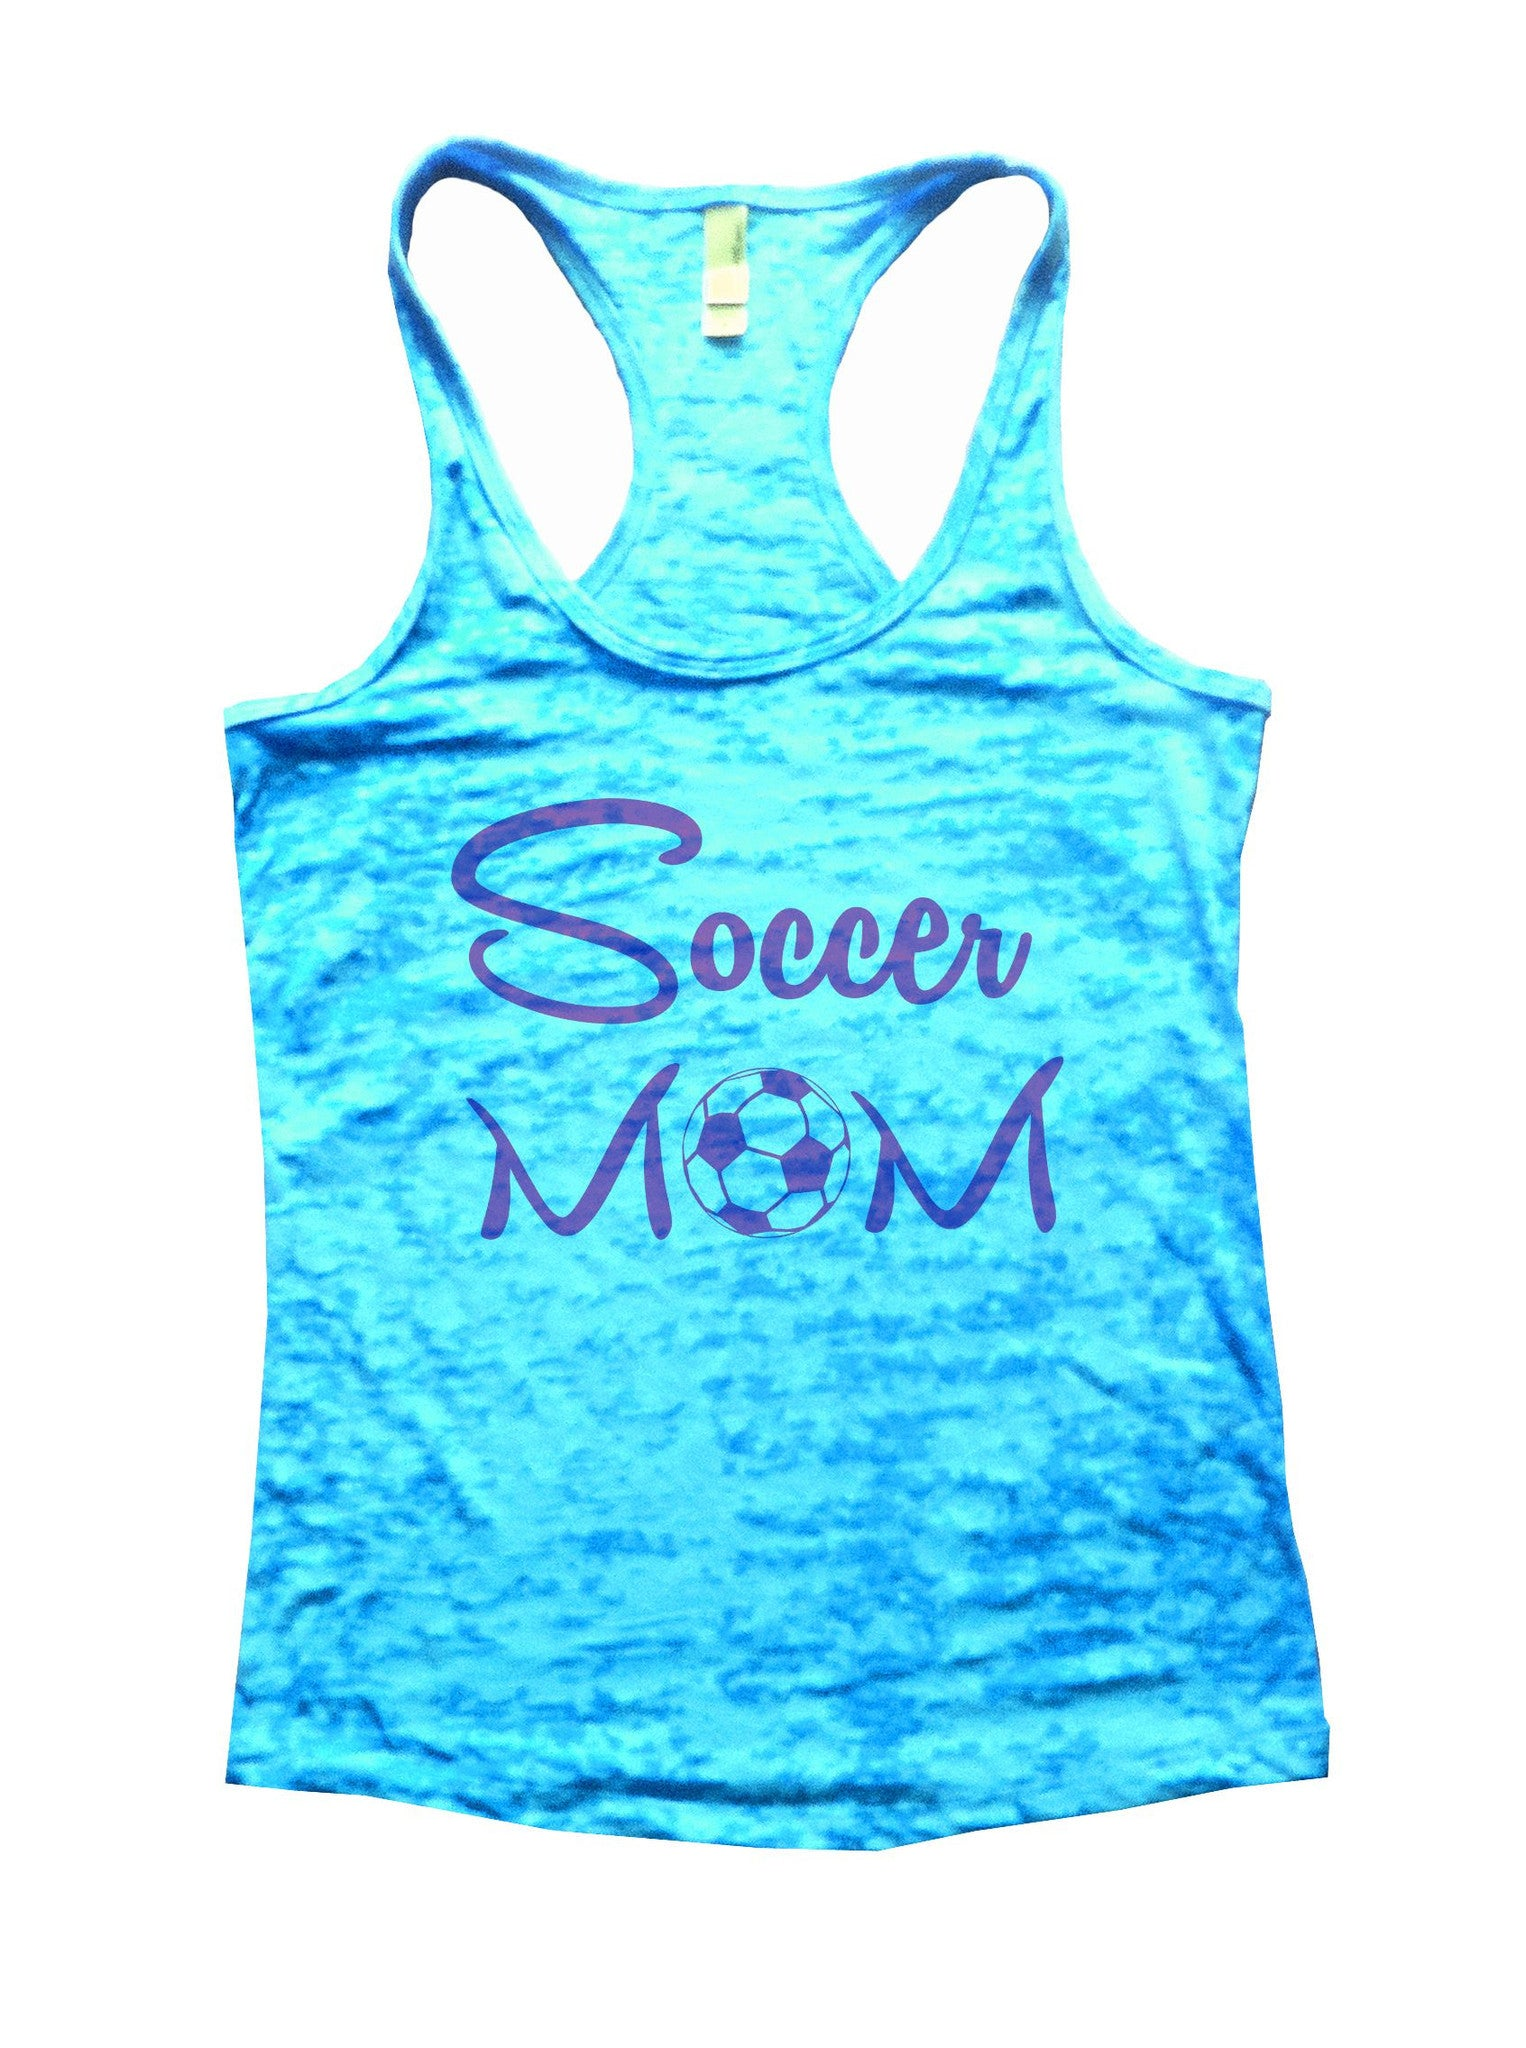 Soccer Mom Burnout Tank Top By BurnoutTankTops.com - 658 - Funny Shirts Tank Tops Burnouts and Triblends  - 4